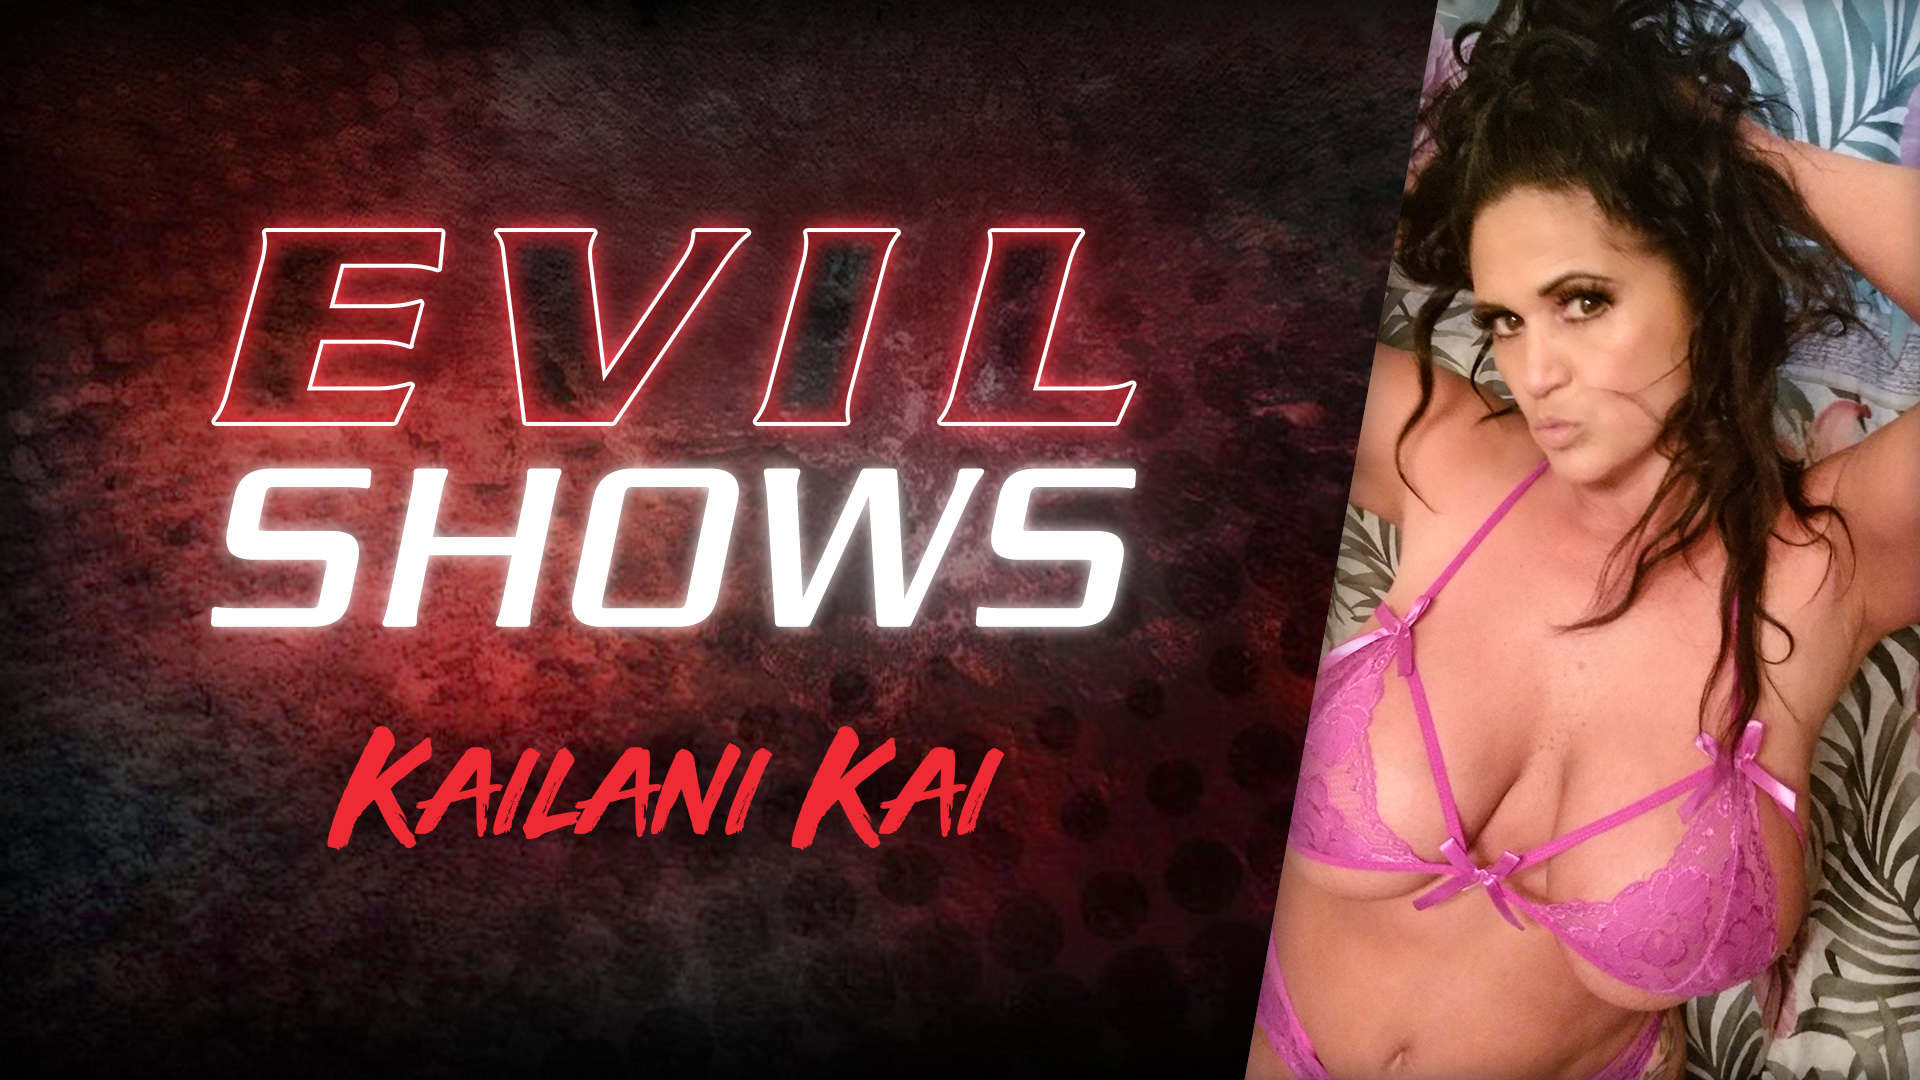 Evil Shows - Kailani Kai